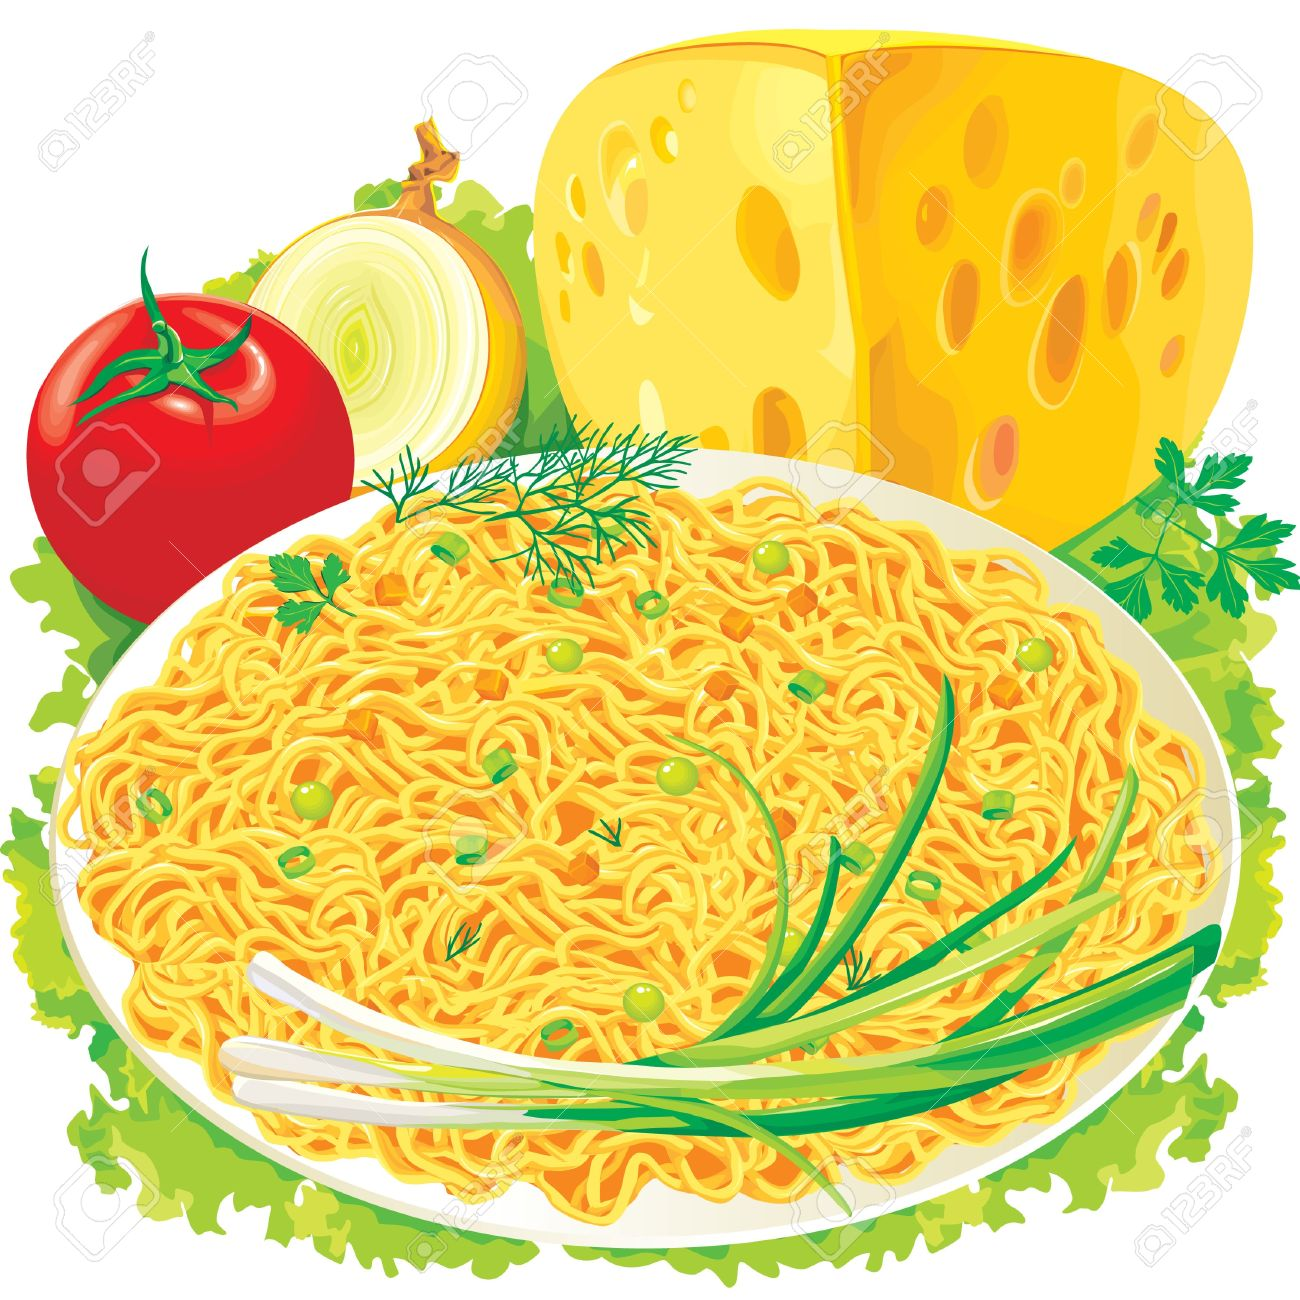 Plate Of Spaghetti With Vegetables Royalty Free Cliparts, Vectors.